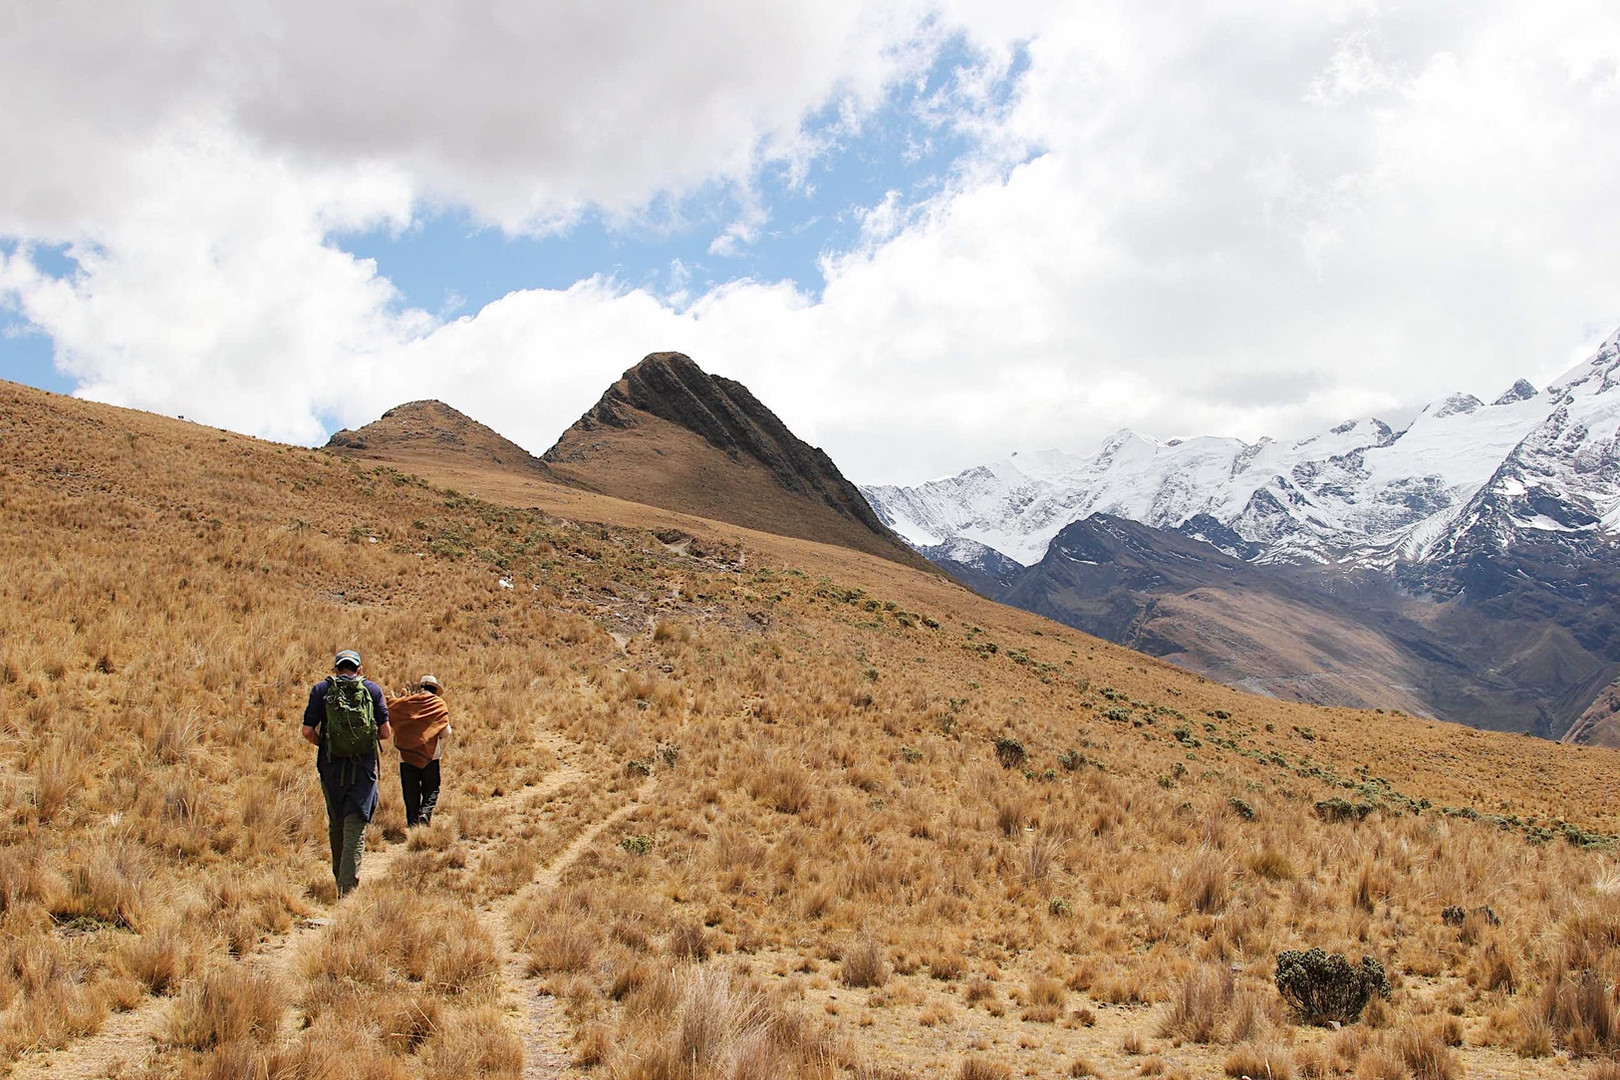 Hiking through the Andes in Bolivia.